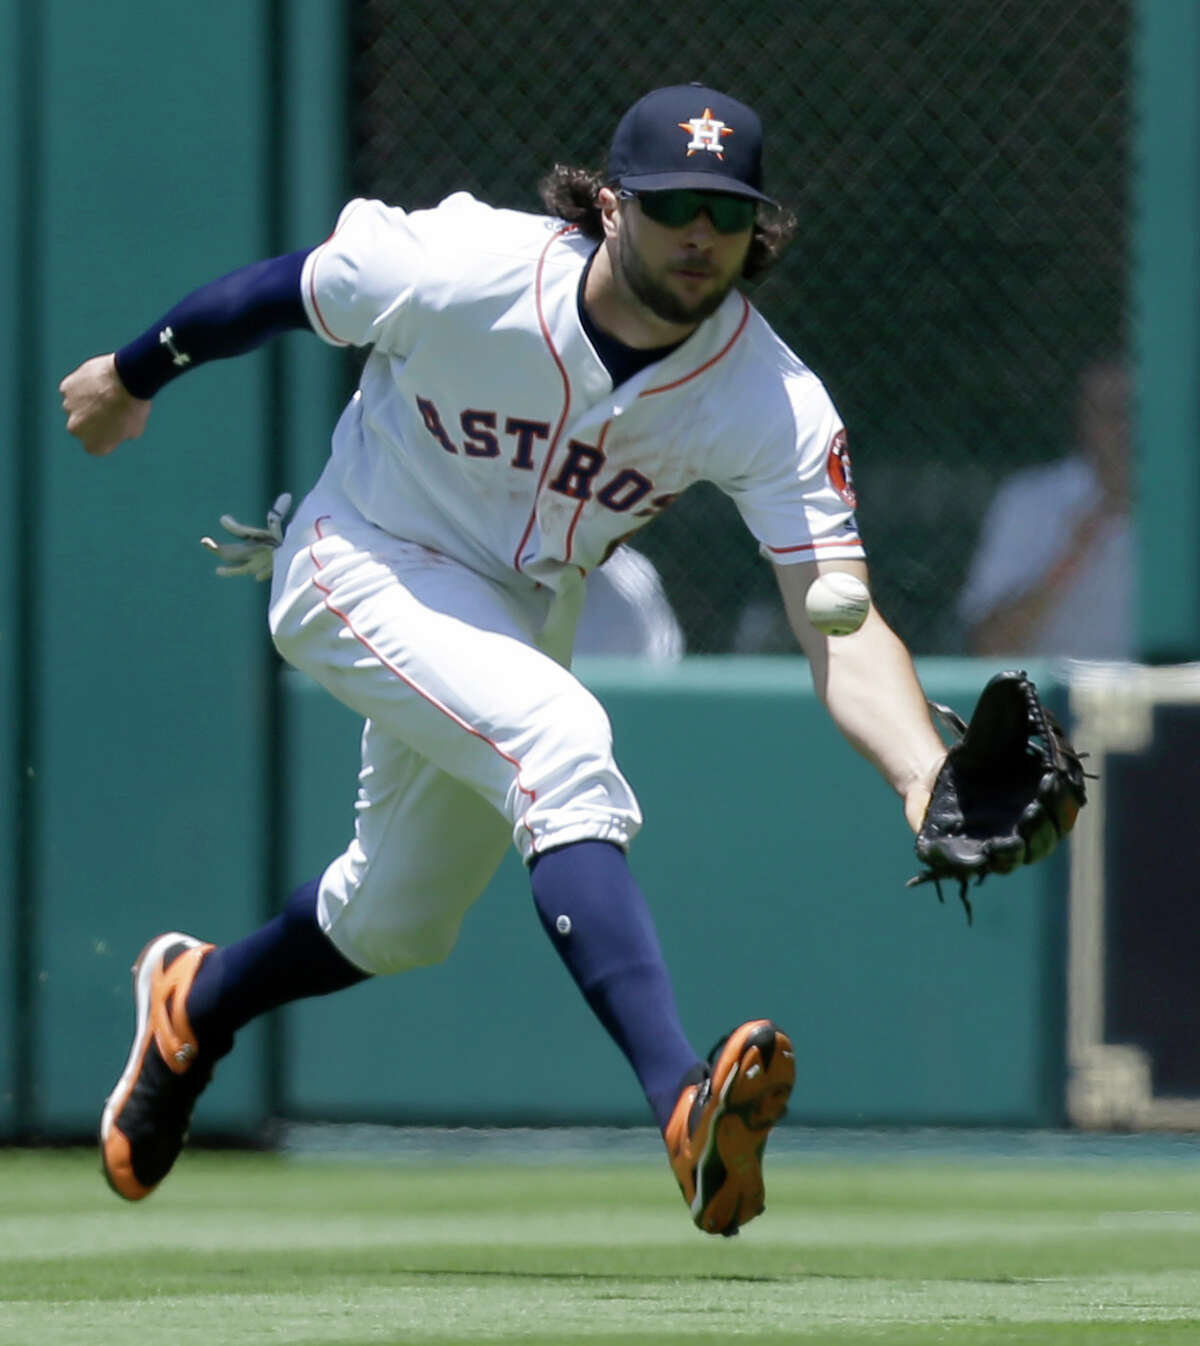 Houston Astros center fielder Jake Marisnick is playing left field against the Angels Sunday because left field is larger than usual. Manager A.J. Hinch wants someone there who can cover a lot of ground.